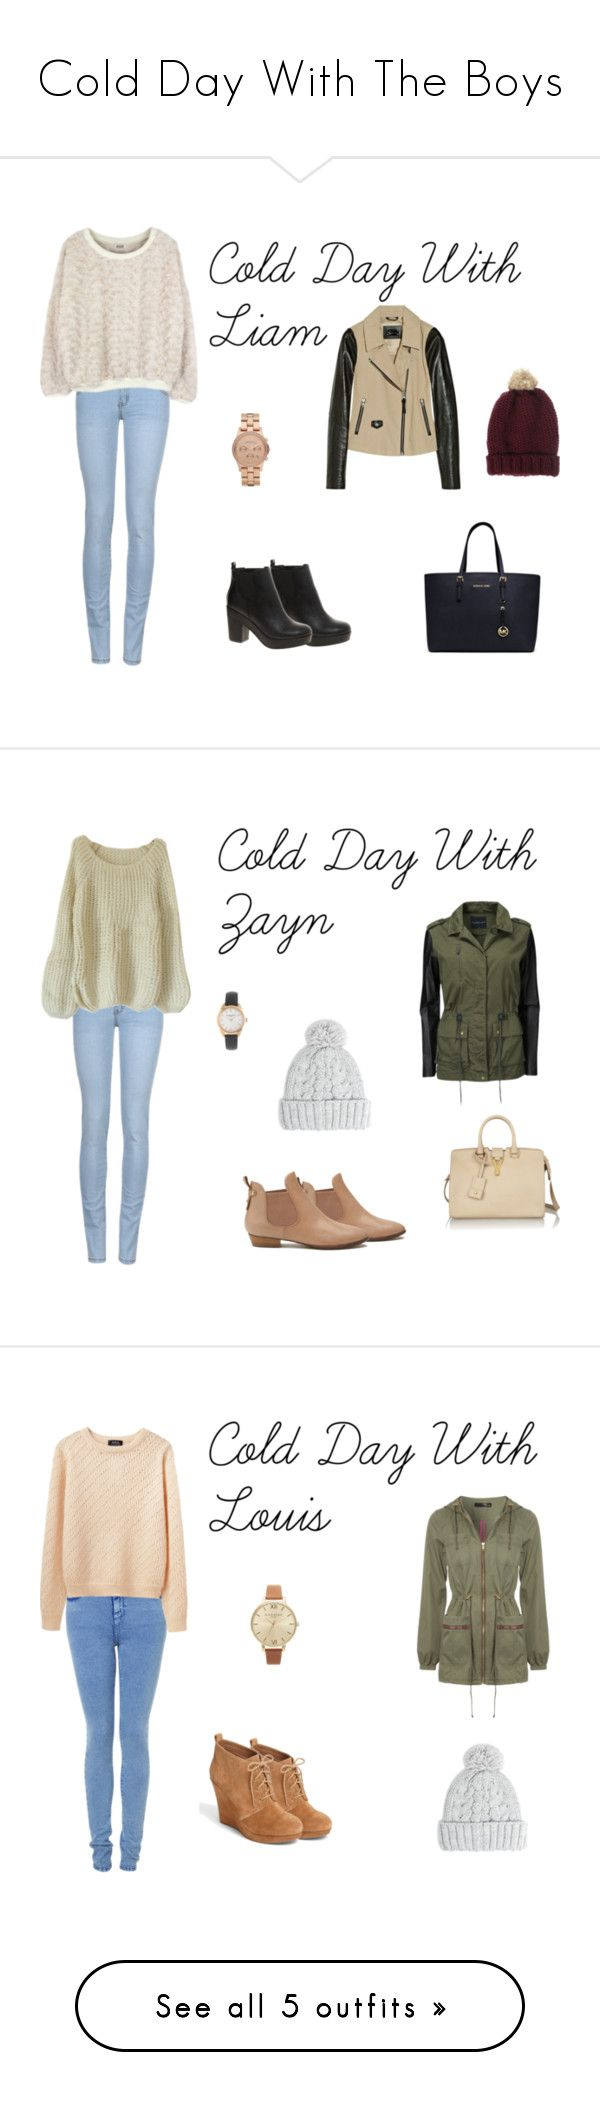 """Cold Day With The Boys"" by one-direction-outfits-of-the-day ❤ liked on Polyvore featuring ASOS, Marc by Marc Jacobs, Mackage, MICHAEL Michael Kors, Modström, MANGO, J.Crew, Witchery, Yves Saint Laurent and A.P.C."